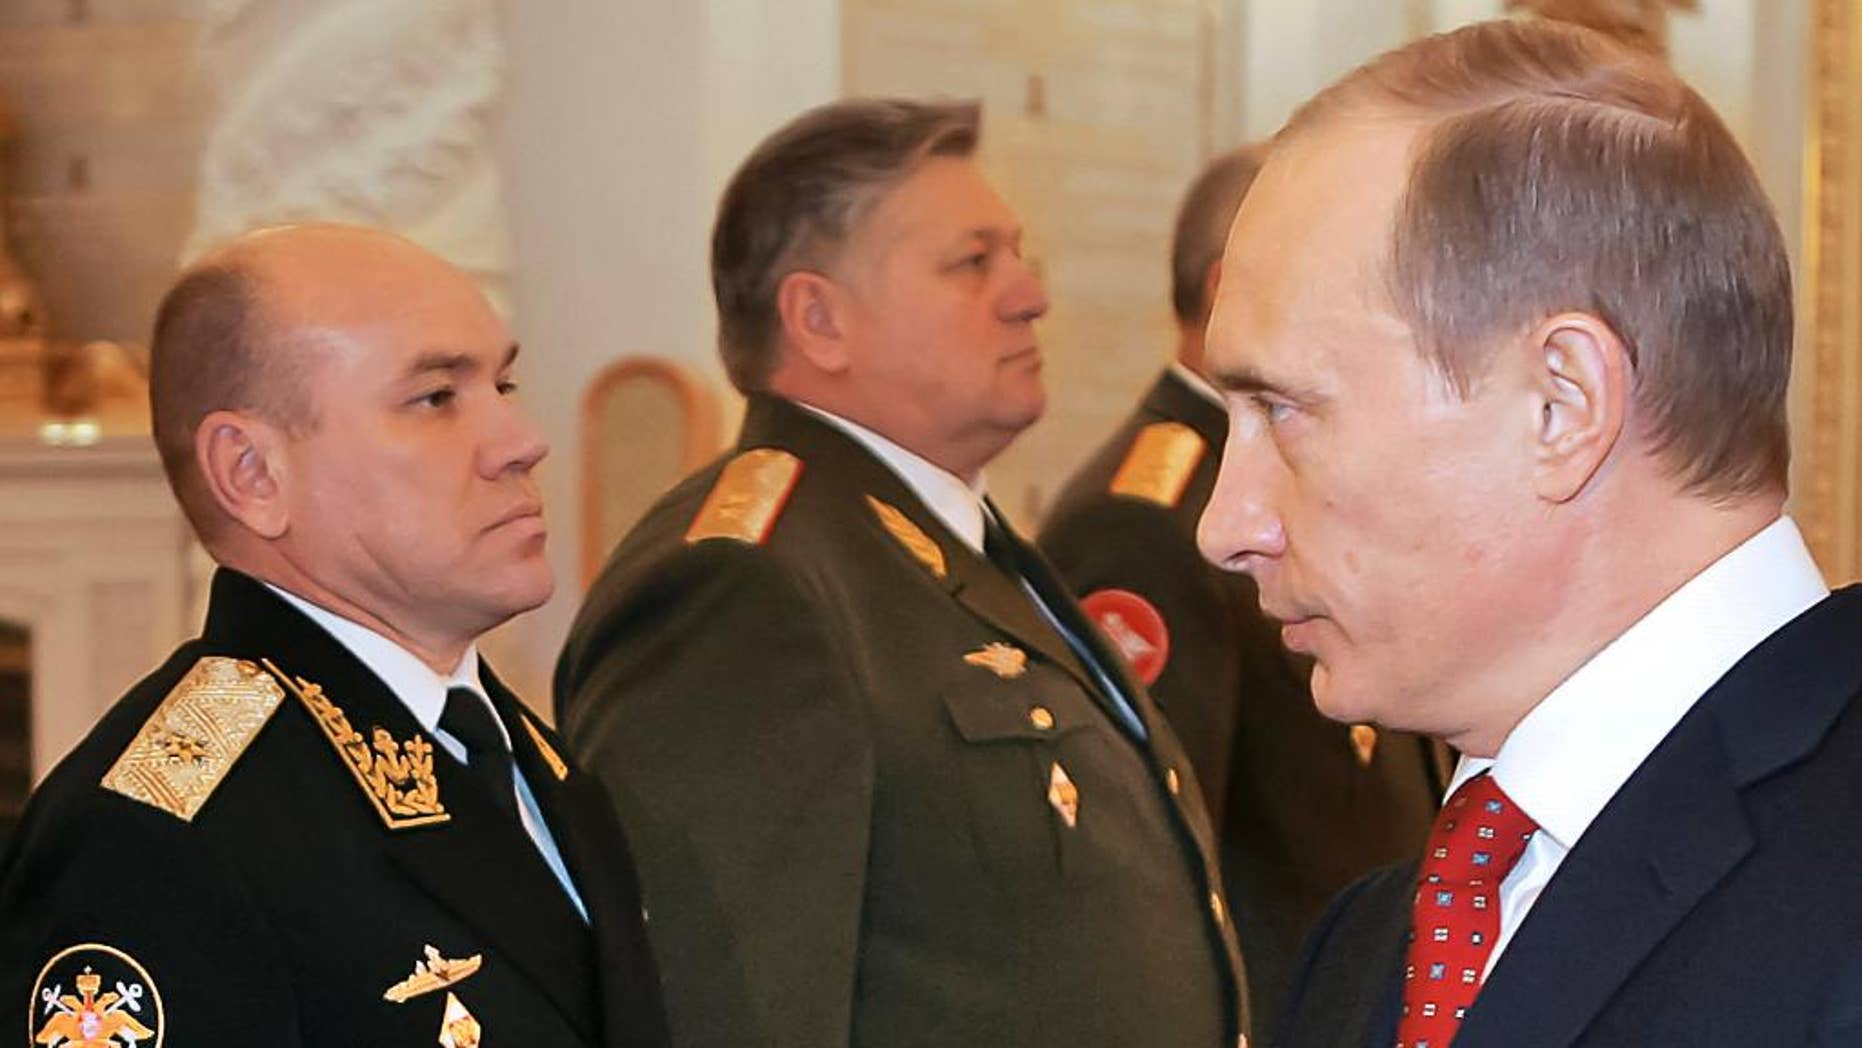 FILE In this file photo taken on Thursday, Feb. 30, 2016, Russian President Vladimir Putin, right, looks at Rear Adm. Viktor Kravchuk, left, during his meeting with a group of top military officers in the Moscow Kremlin, Russia. Russia's defense minister has fired the commander of the Baltic Fleet   Viktor Kravchuk, and his top officers following a sweeping inspection. (Vladimir Rodinov, Sputnik, Kremlin Pool Photo via AP, file)